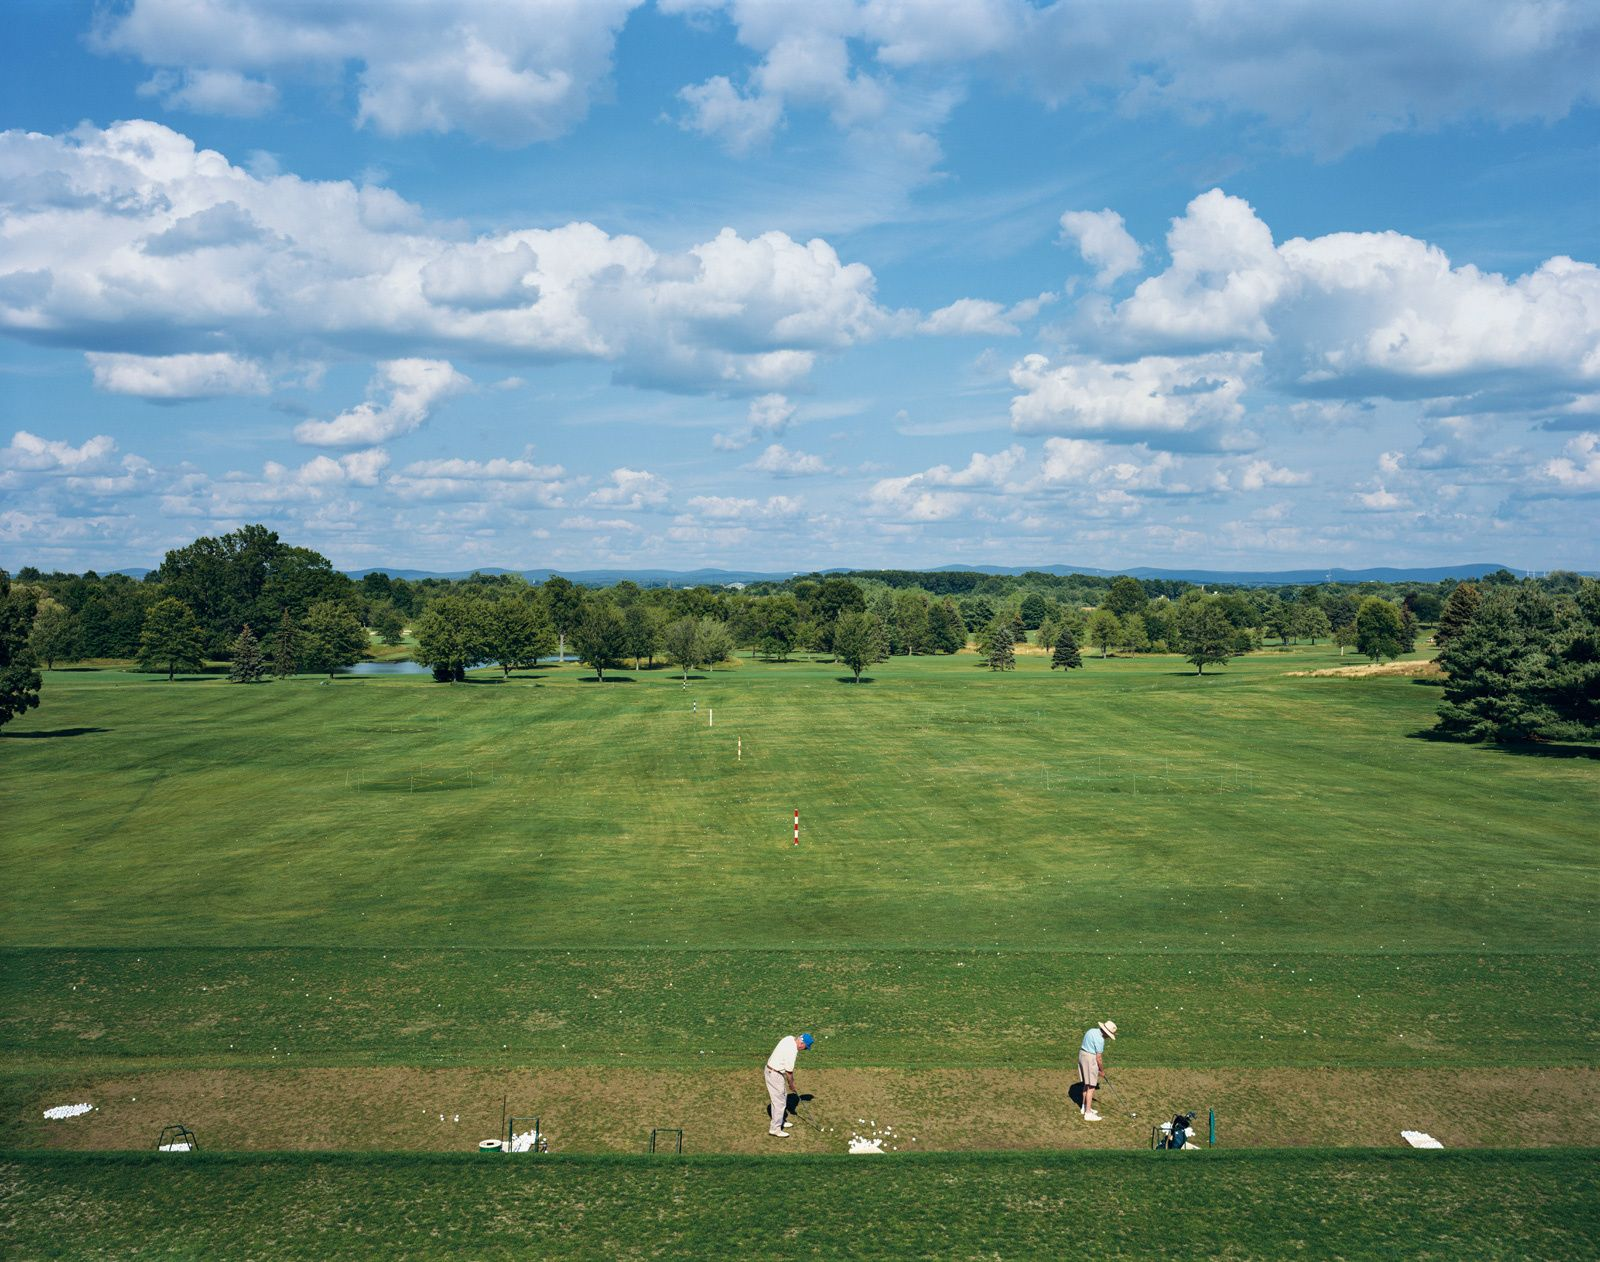 Paysage 2000 en ce qui concerne dad and mom, crestview country club ii 2000 | mitch epstein